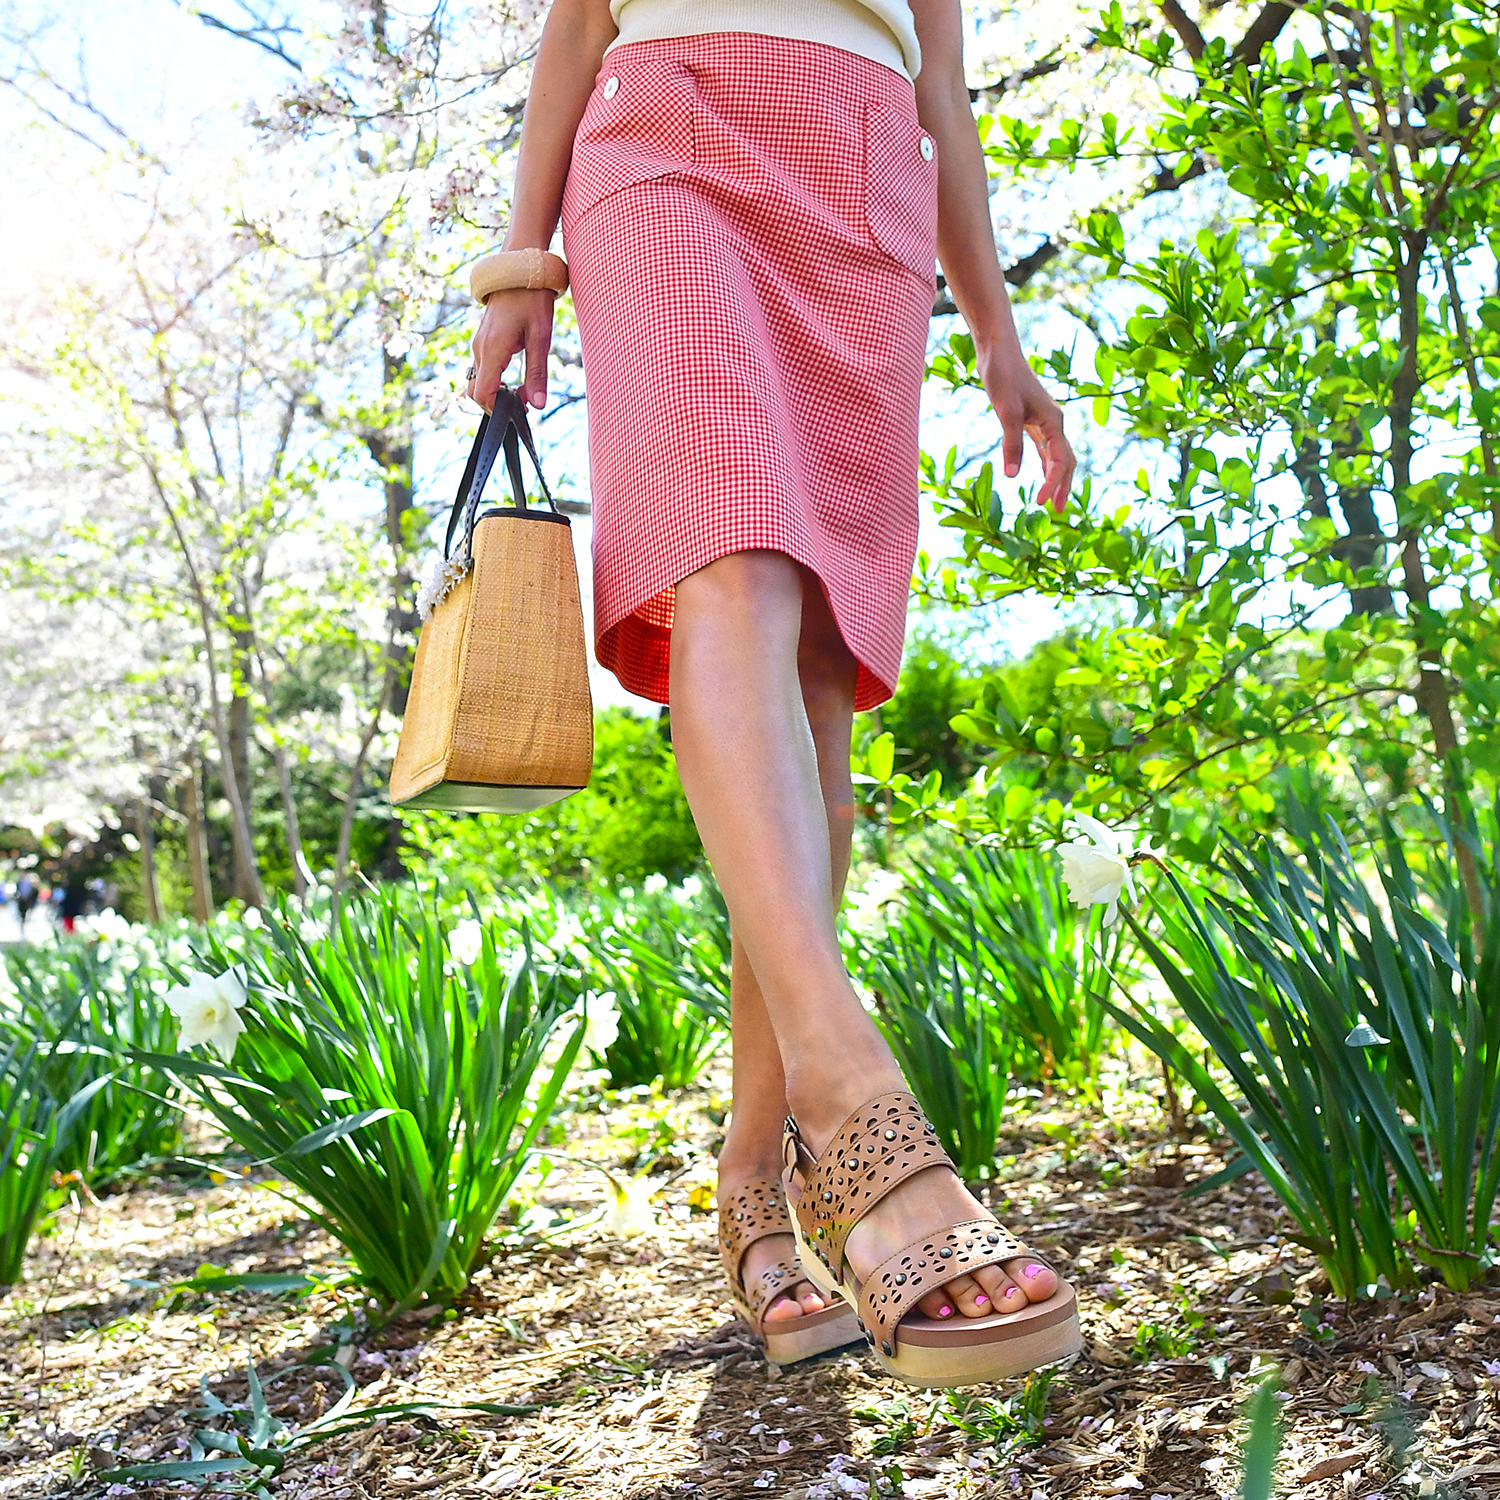 girl fashion nycpretty earth shoes central park nyc newyork girl spring